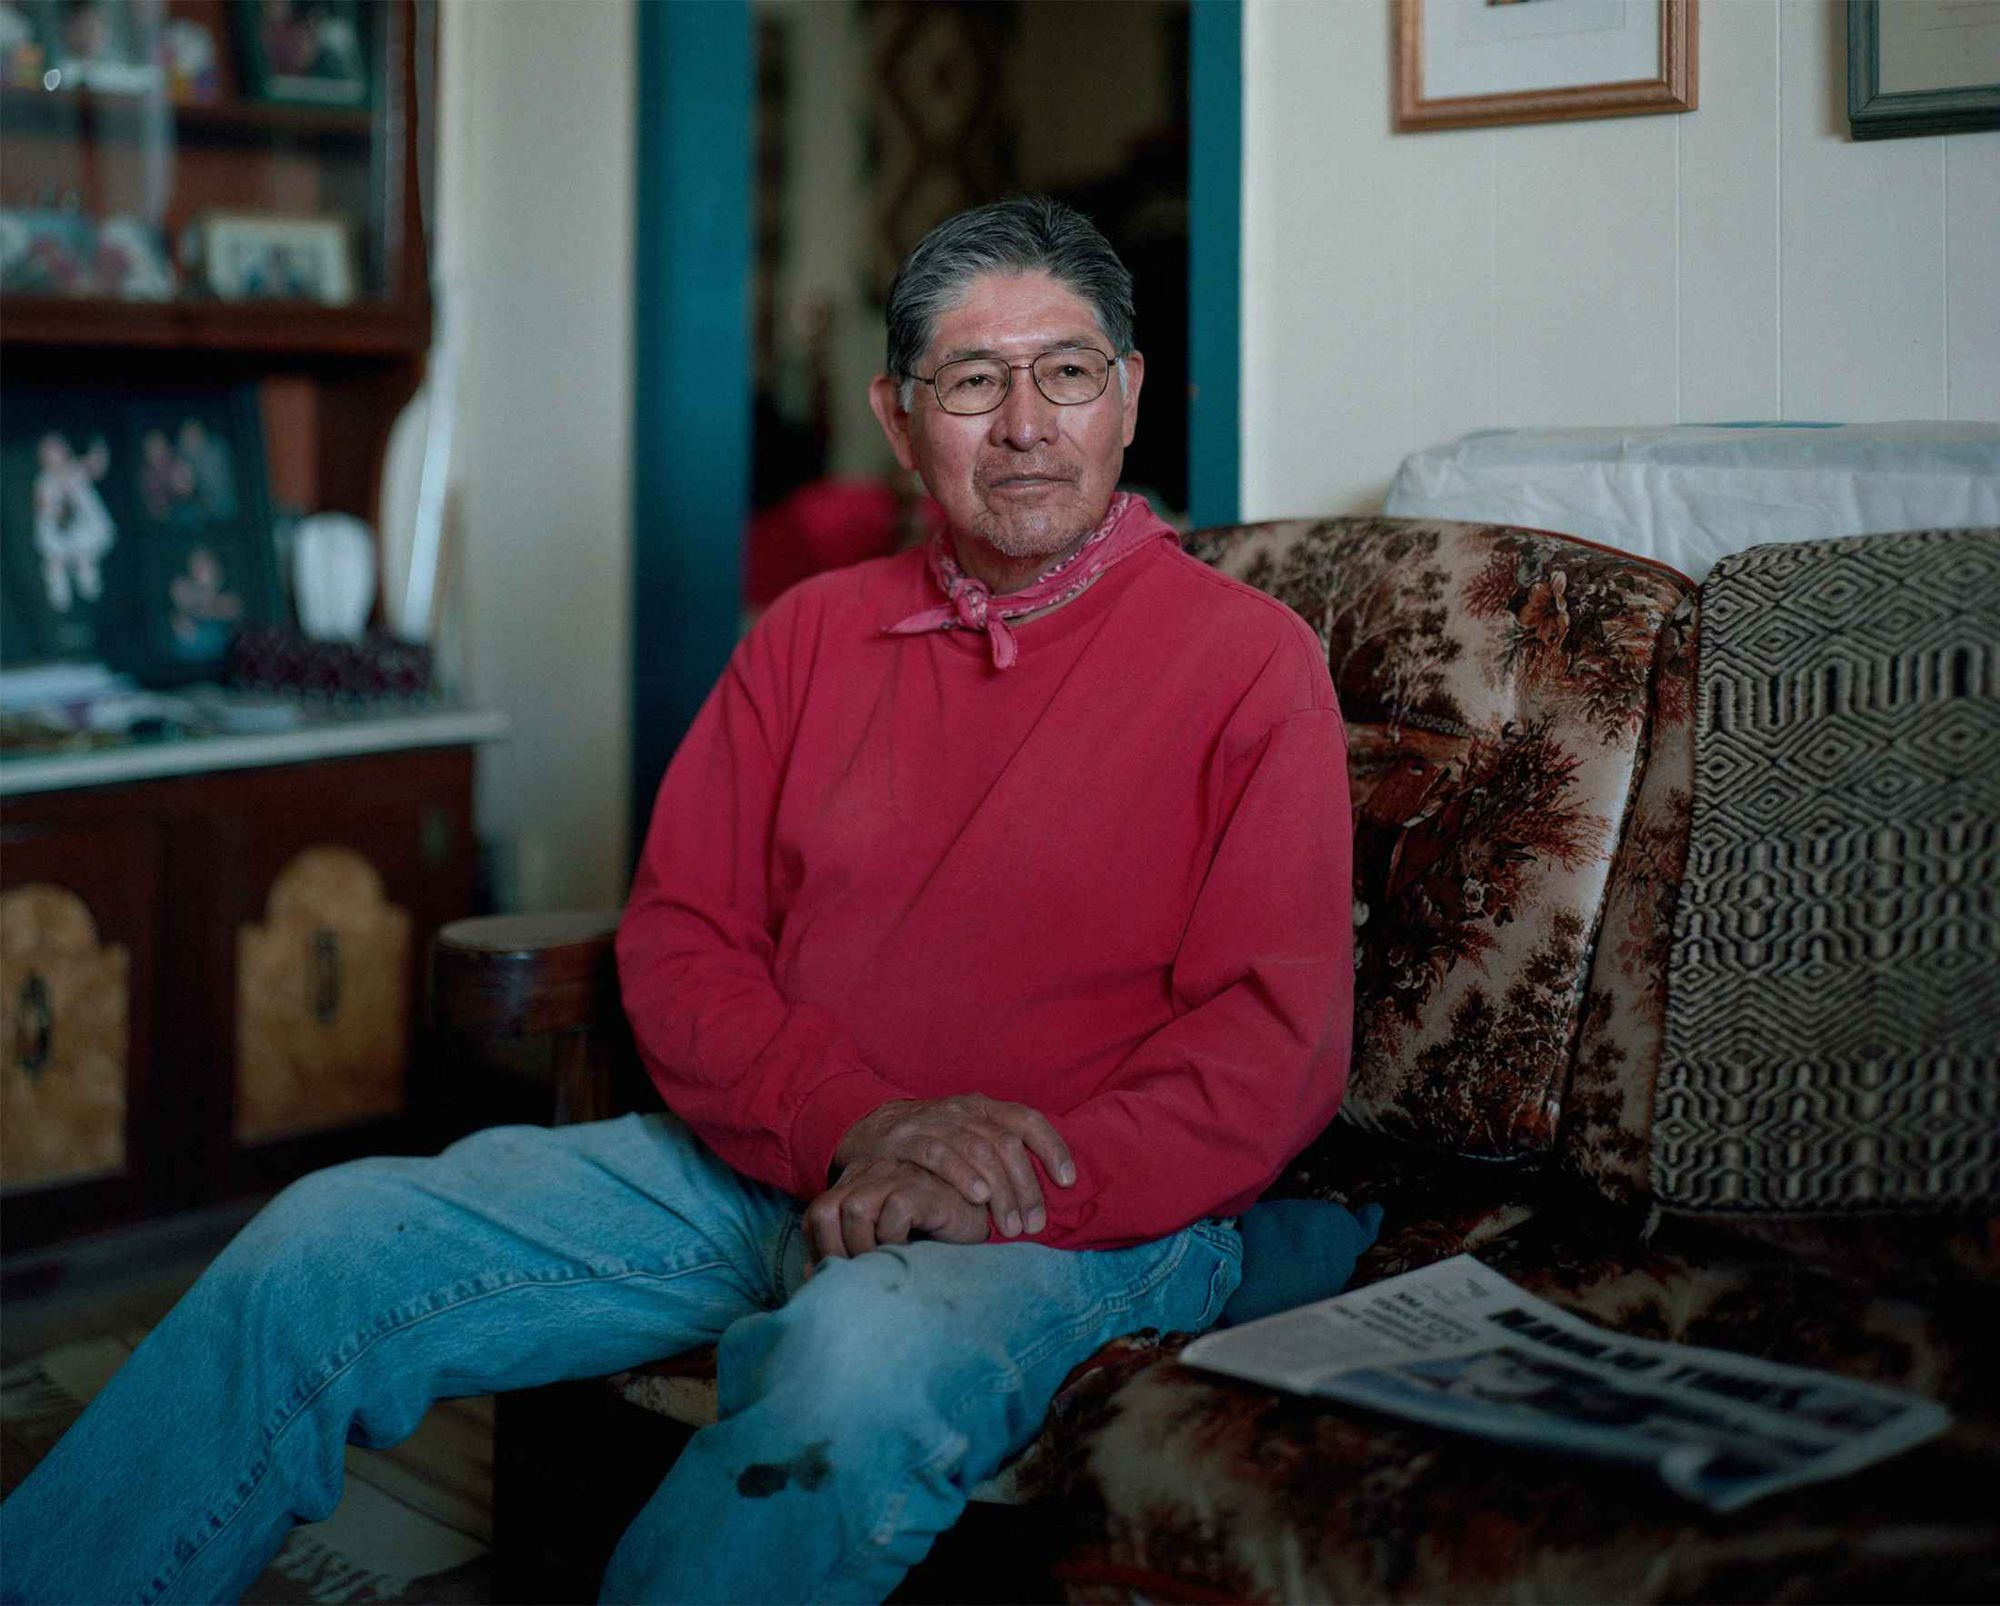 Percy Deal at his home in Cactus Valley. Photographer: Bryan Schutmaat for Bloomberg Businessweek lutheran indian ministries